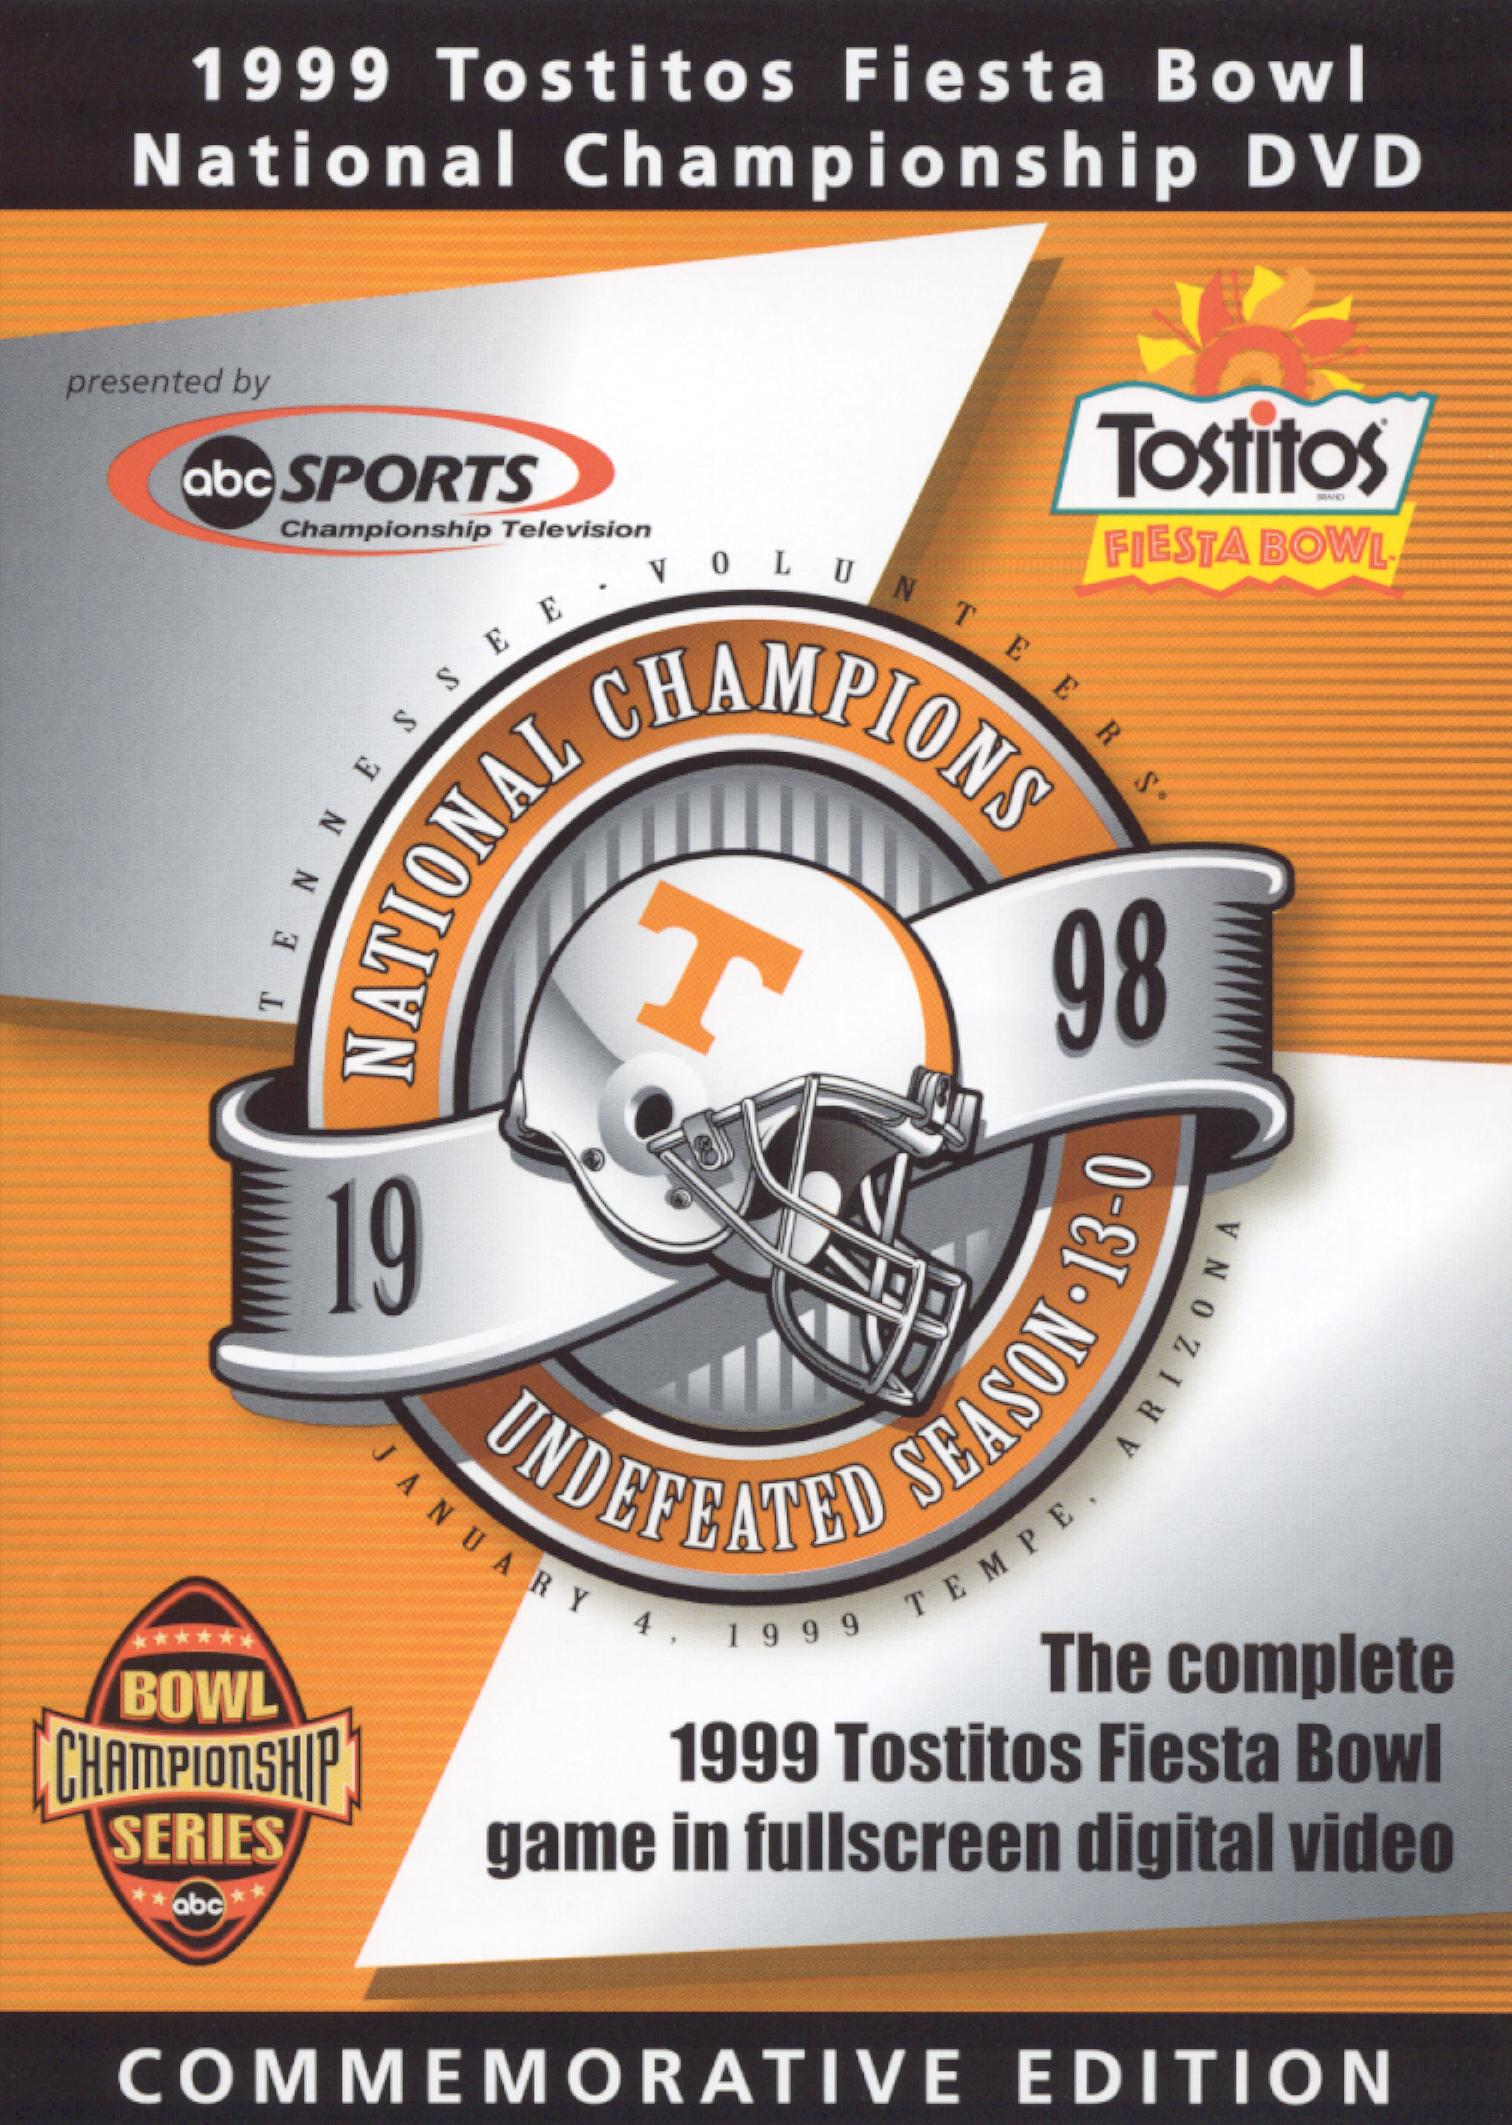 1999 Tostitos Fiesta Bowl: Tennessee Volunteers - 1998 National Champions